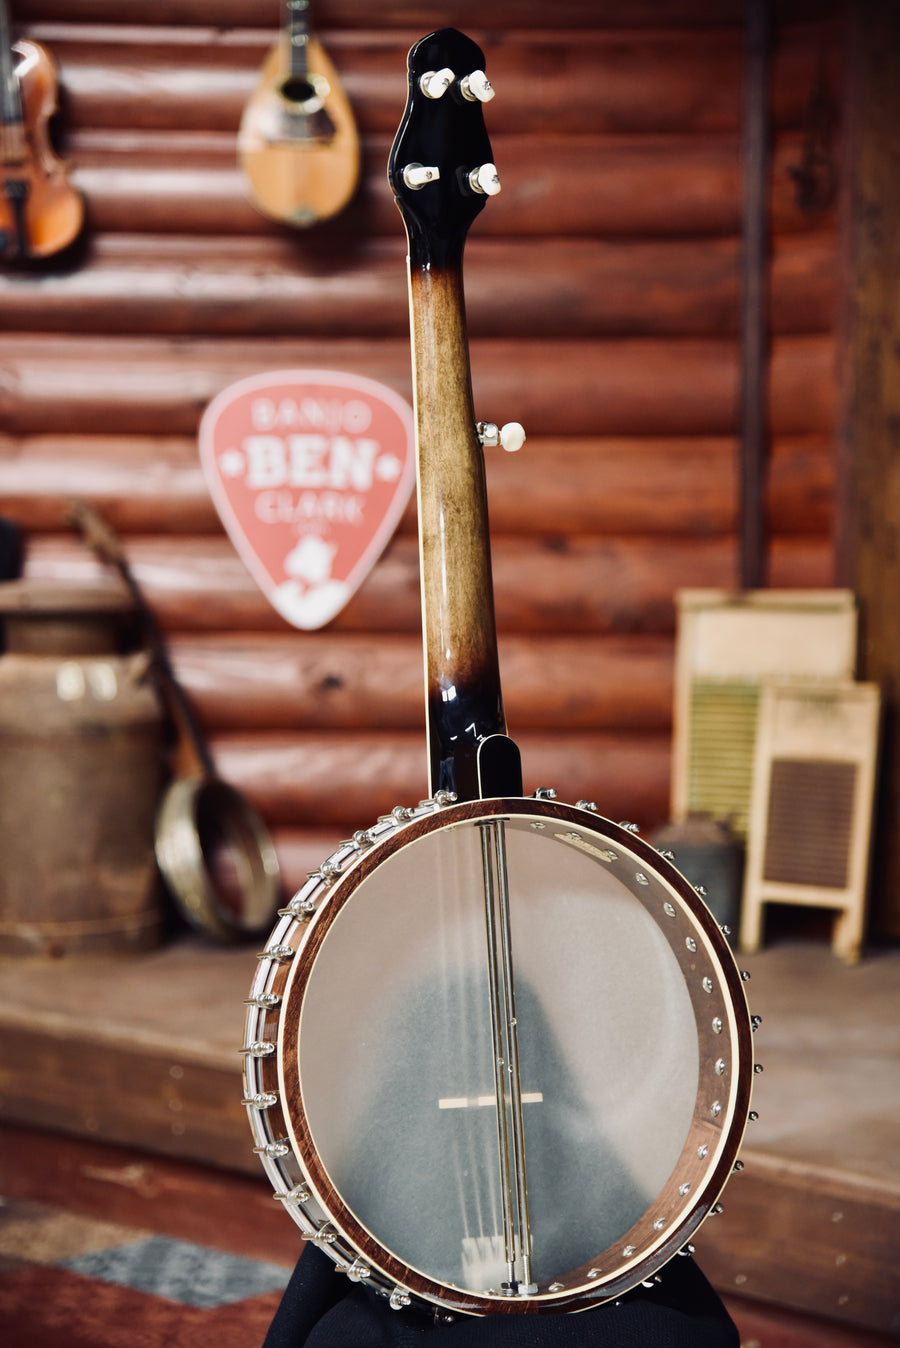 Gold Tone CEB-5 5-String Cello Banjo With Case